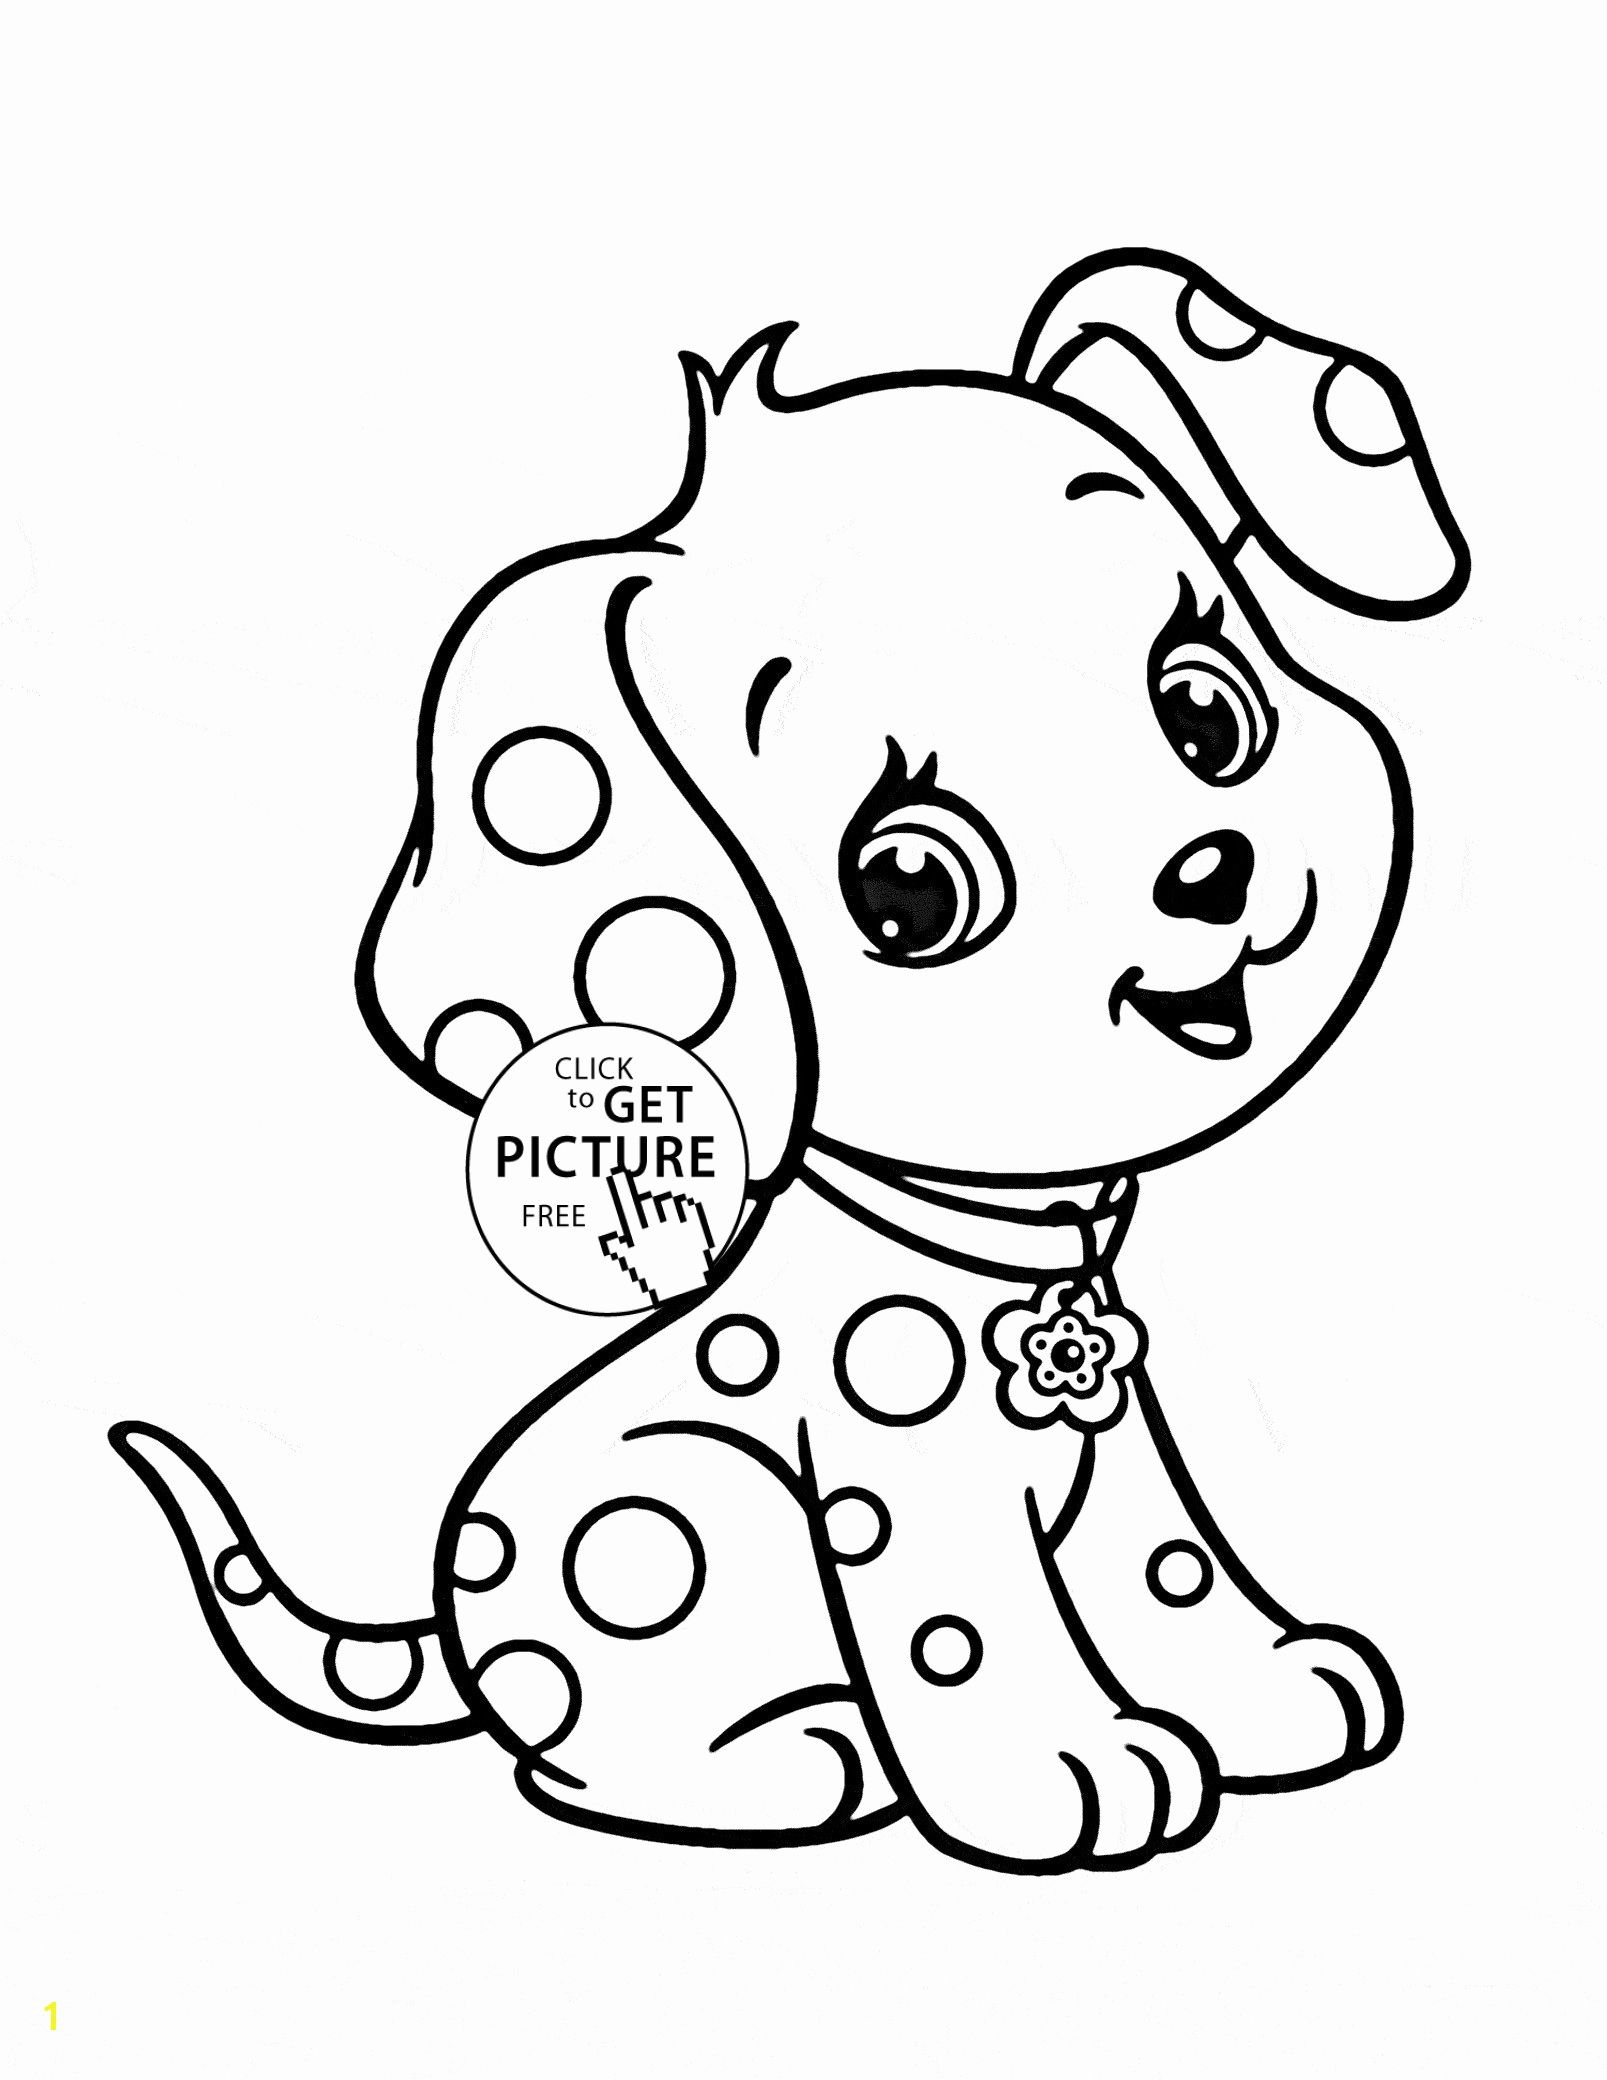 Animal Coloring Pages For Kids Medium In 2020 Puppy Coloring Pages Unicorn Coloring Pages Animal Coloring Pages